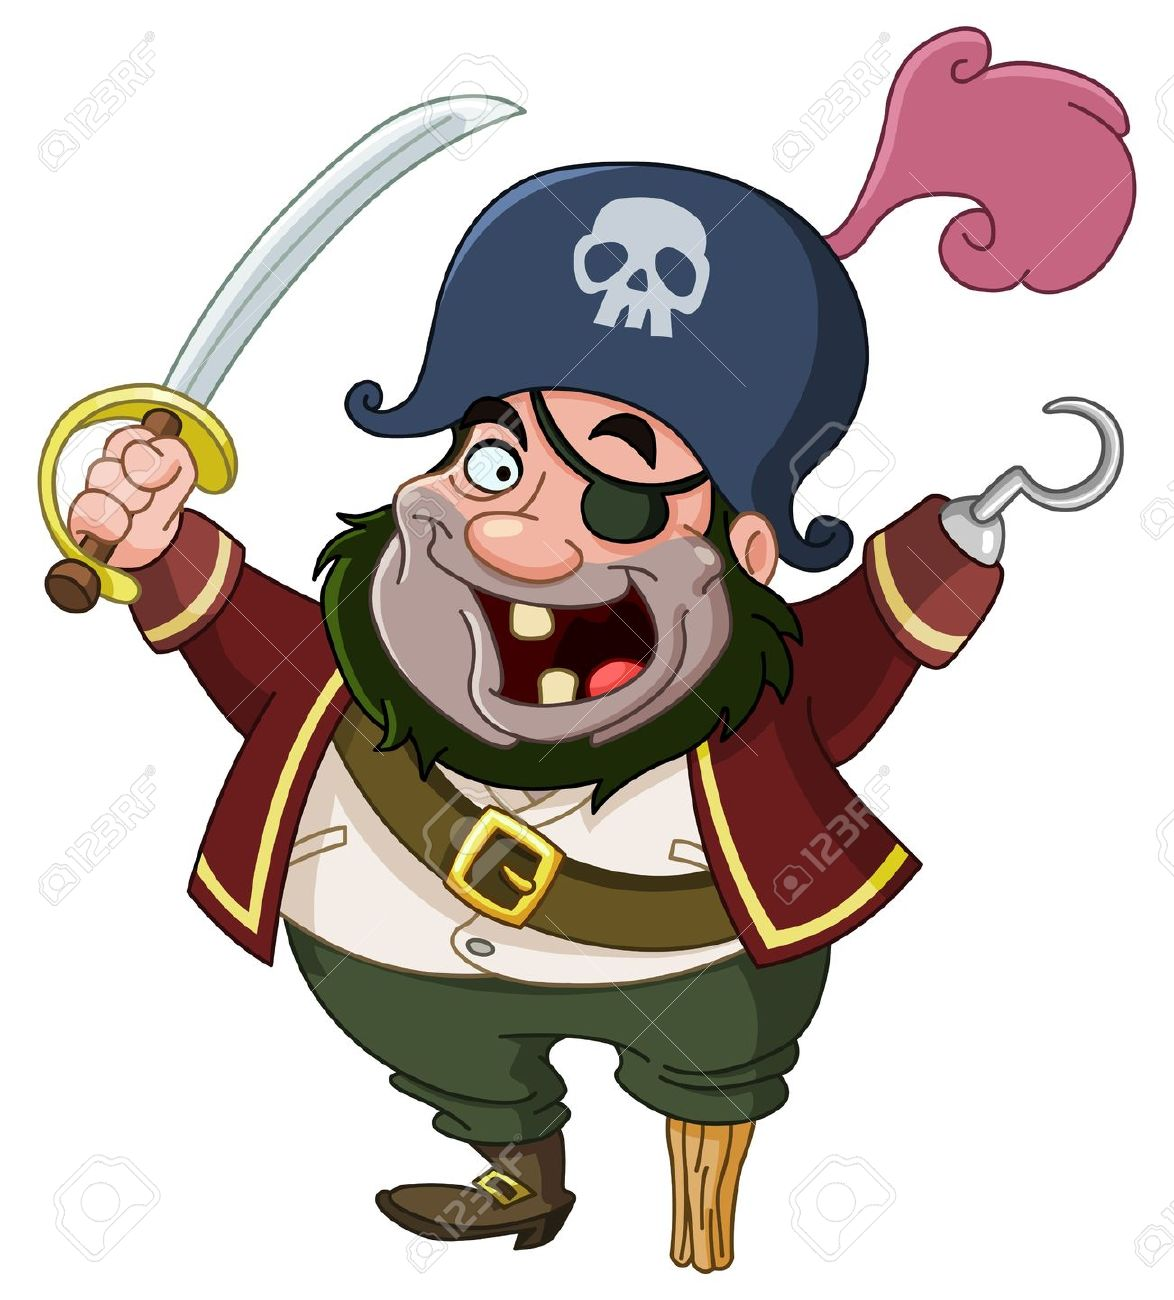 Cartoon Pirate Royalty Free Cliparts, Vectors, And Stock.